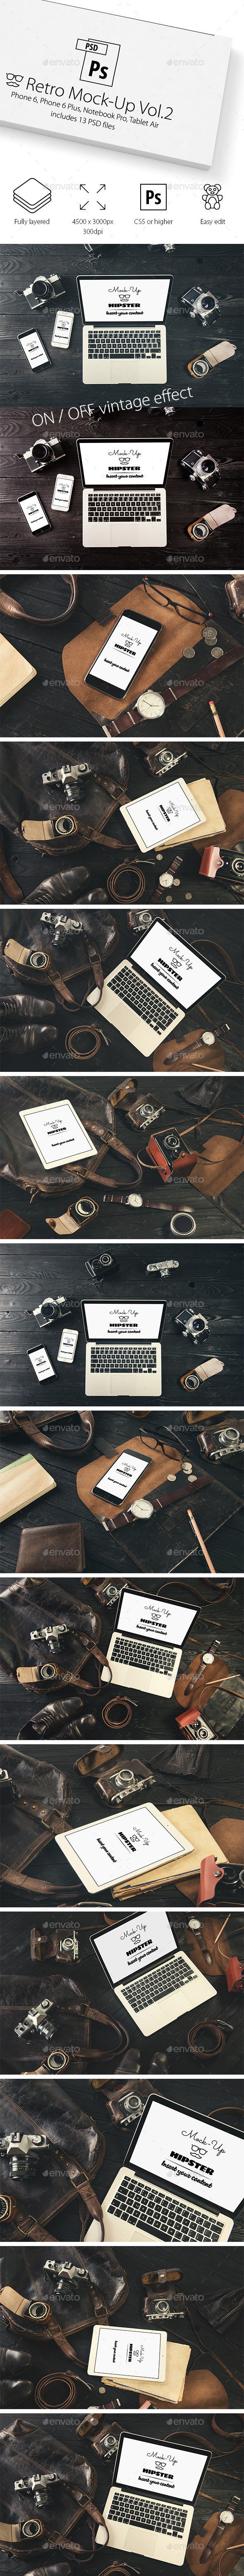 Complete Bundle of 55 Mocka Mockups (Displays)